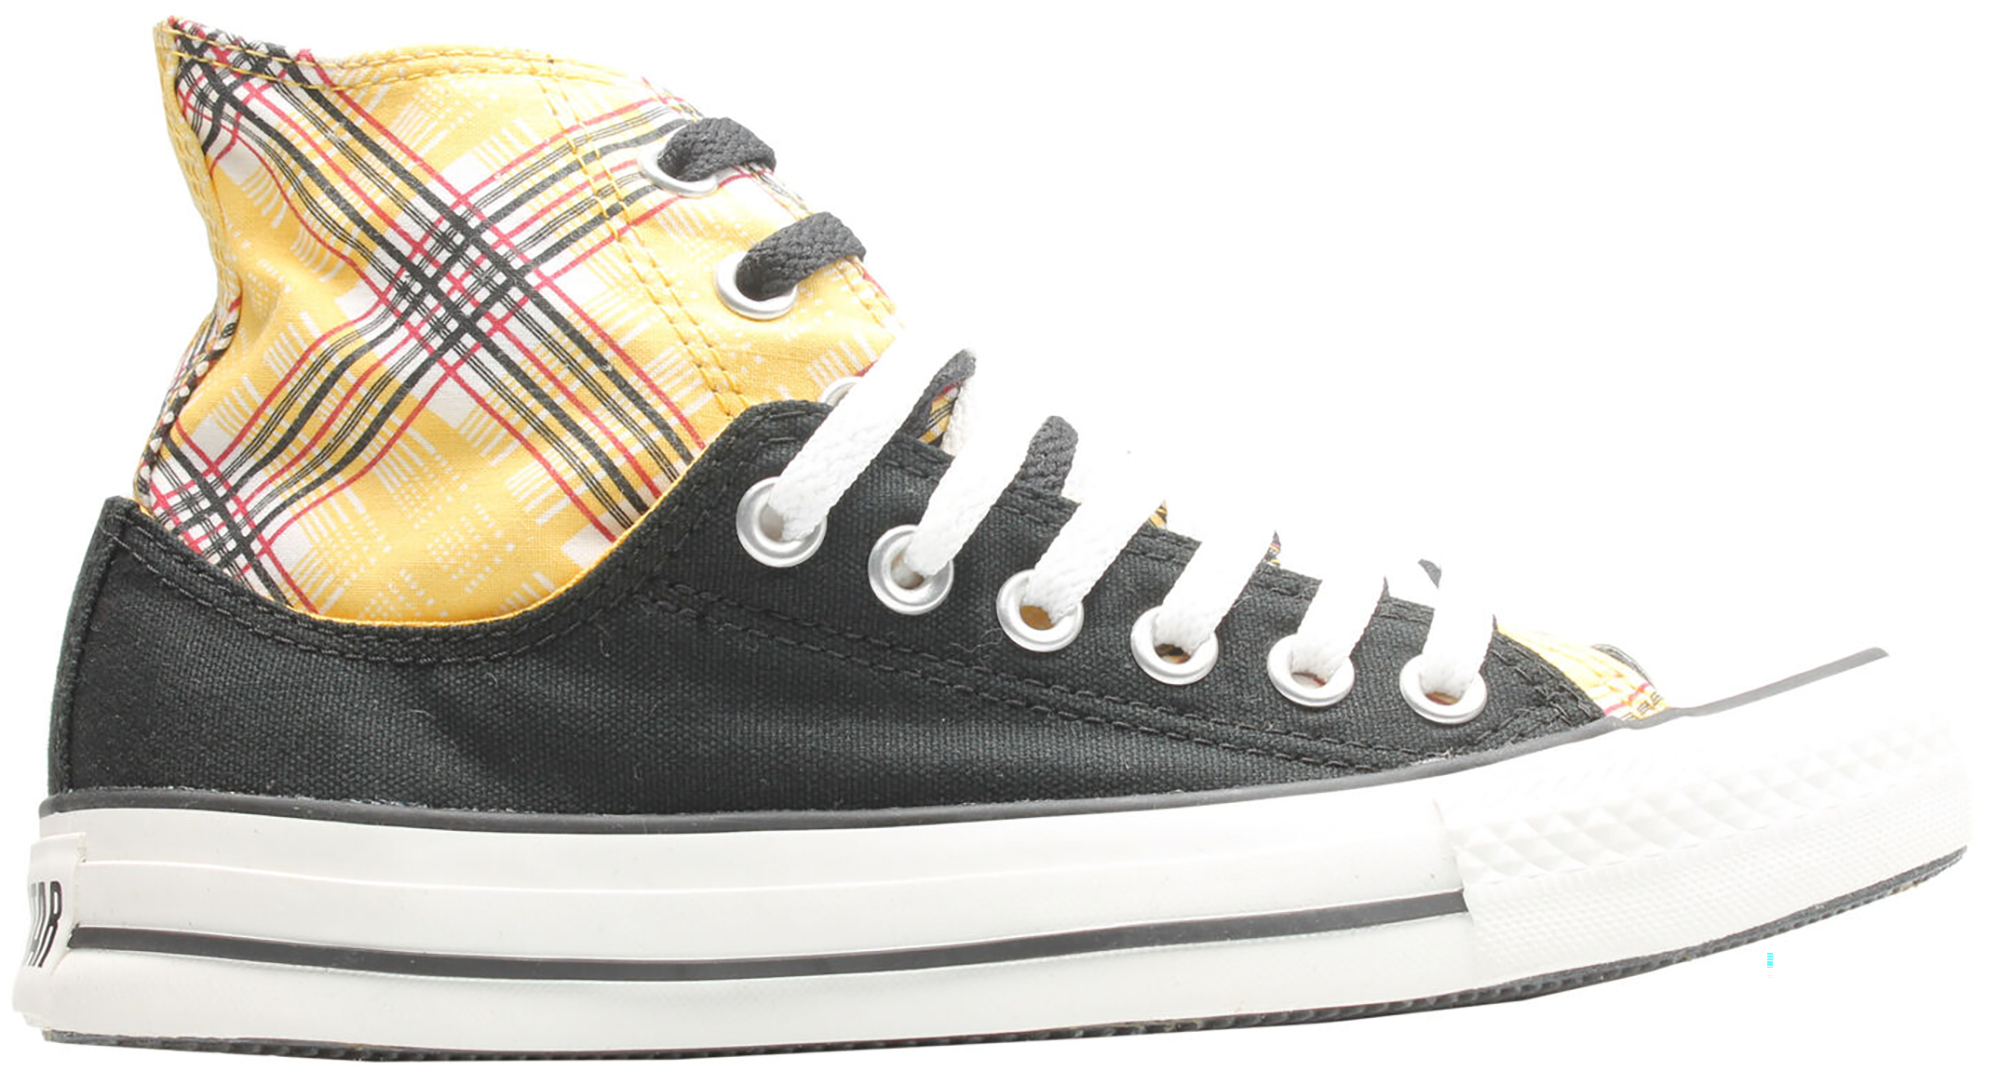 Converse Chuck Taylor All-Star Layer Up